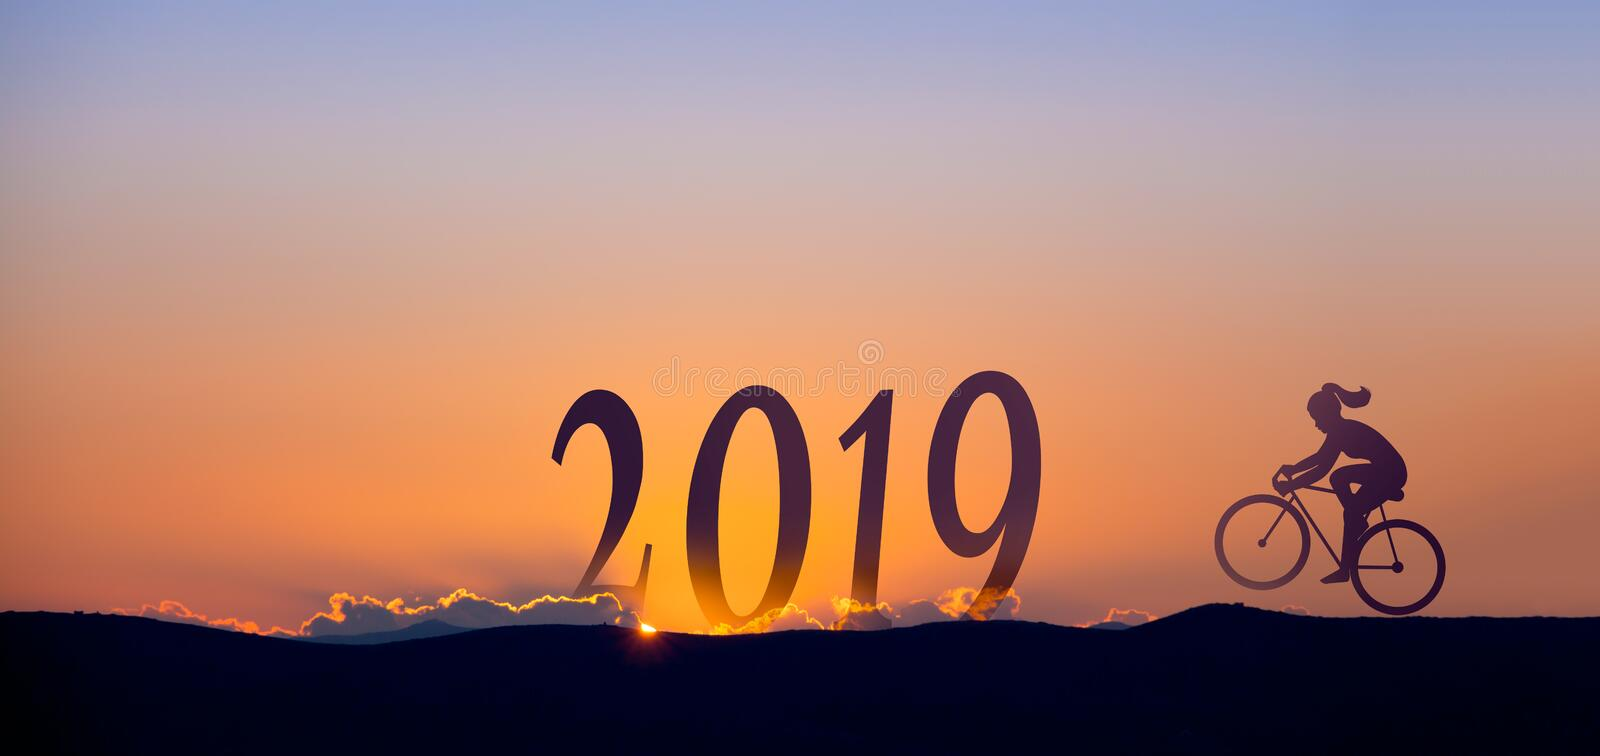 2019 On dark mountains with silhouette of a woman biking and sunrise as background. 2019 On dark mountains with silhouette of a woman biking and sunrise as stock photos